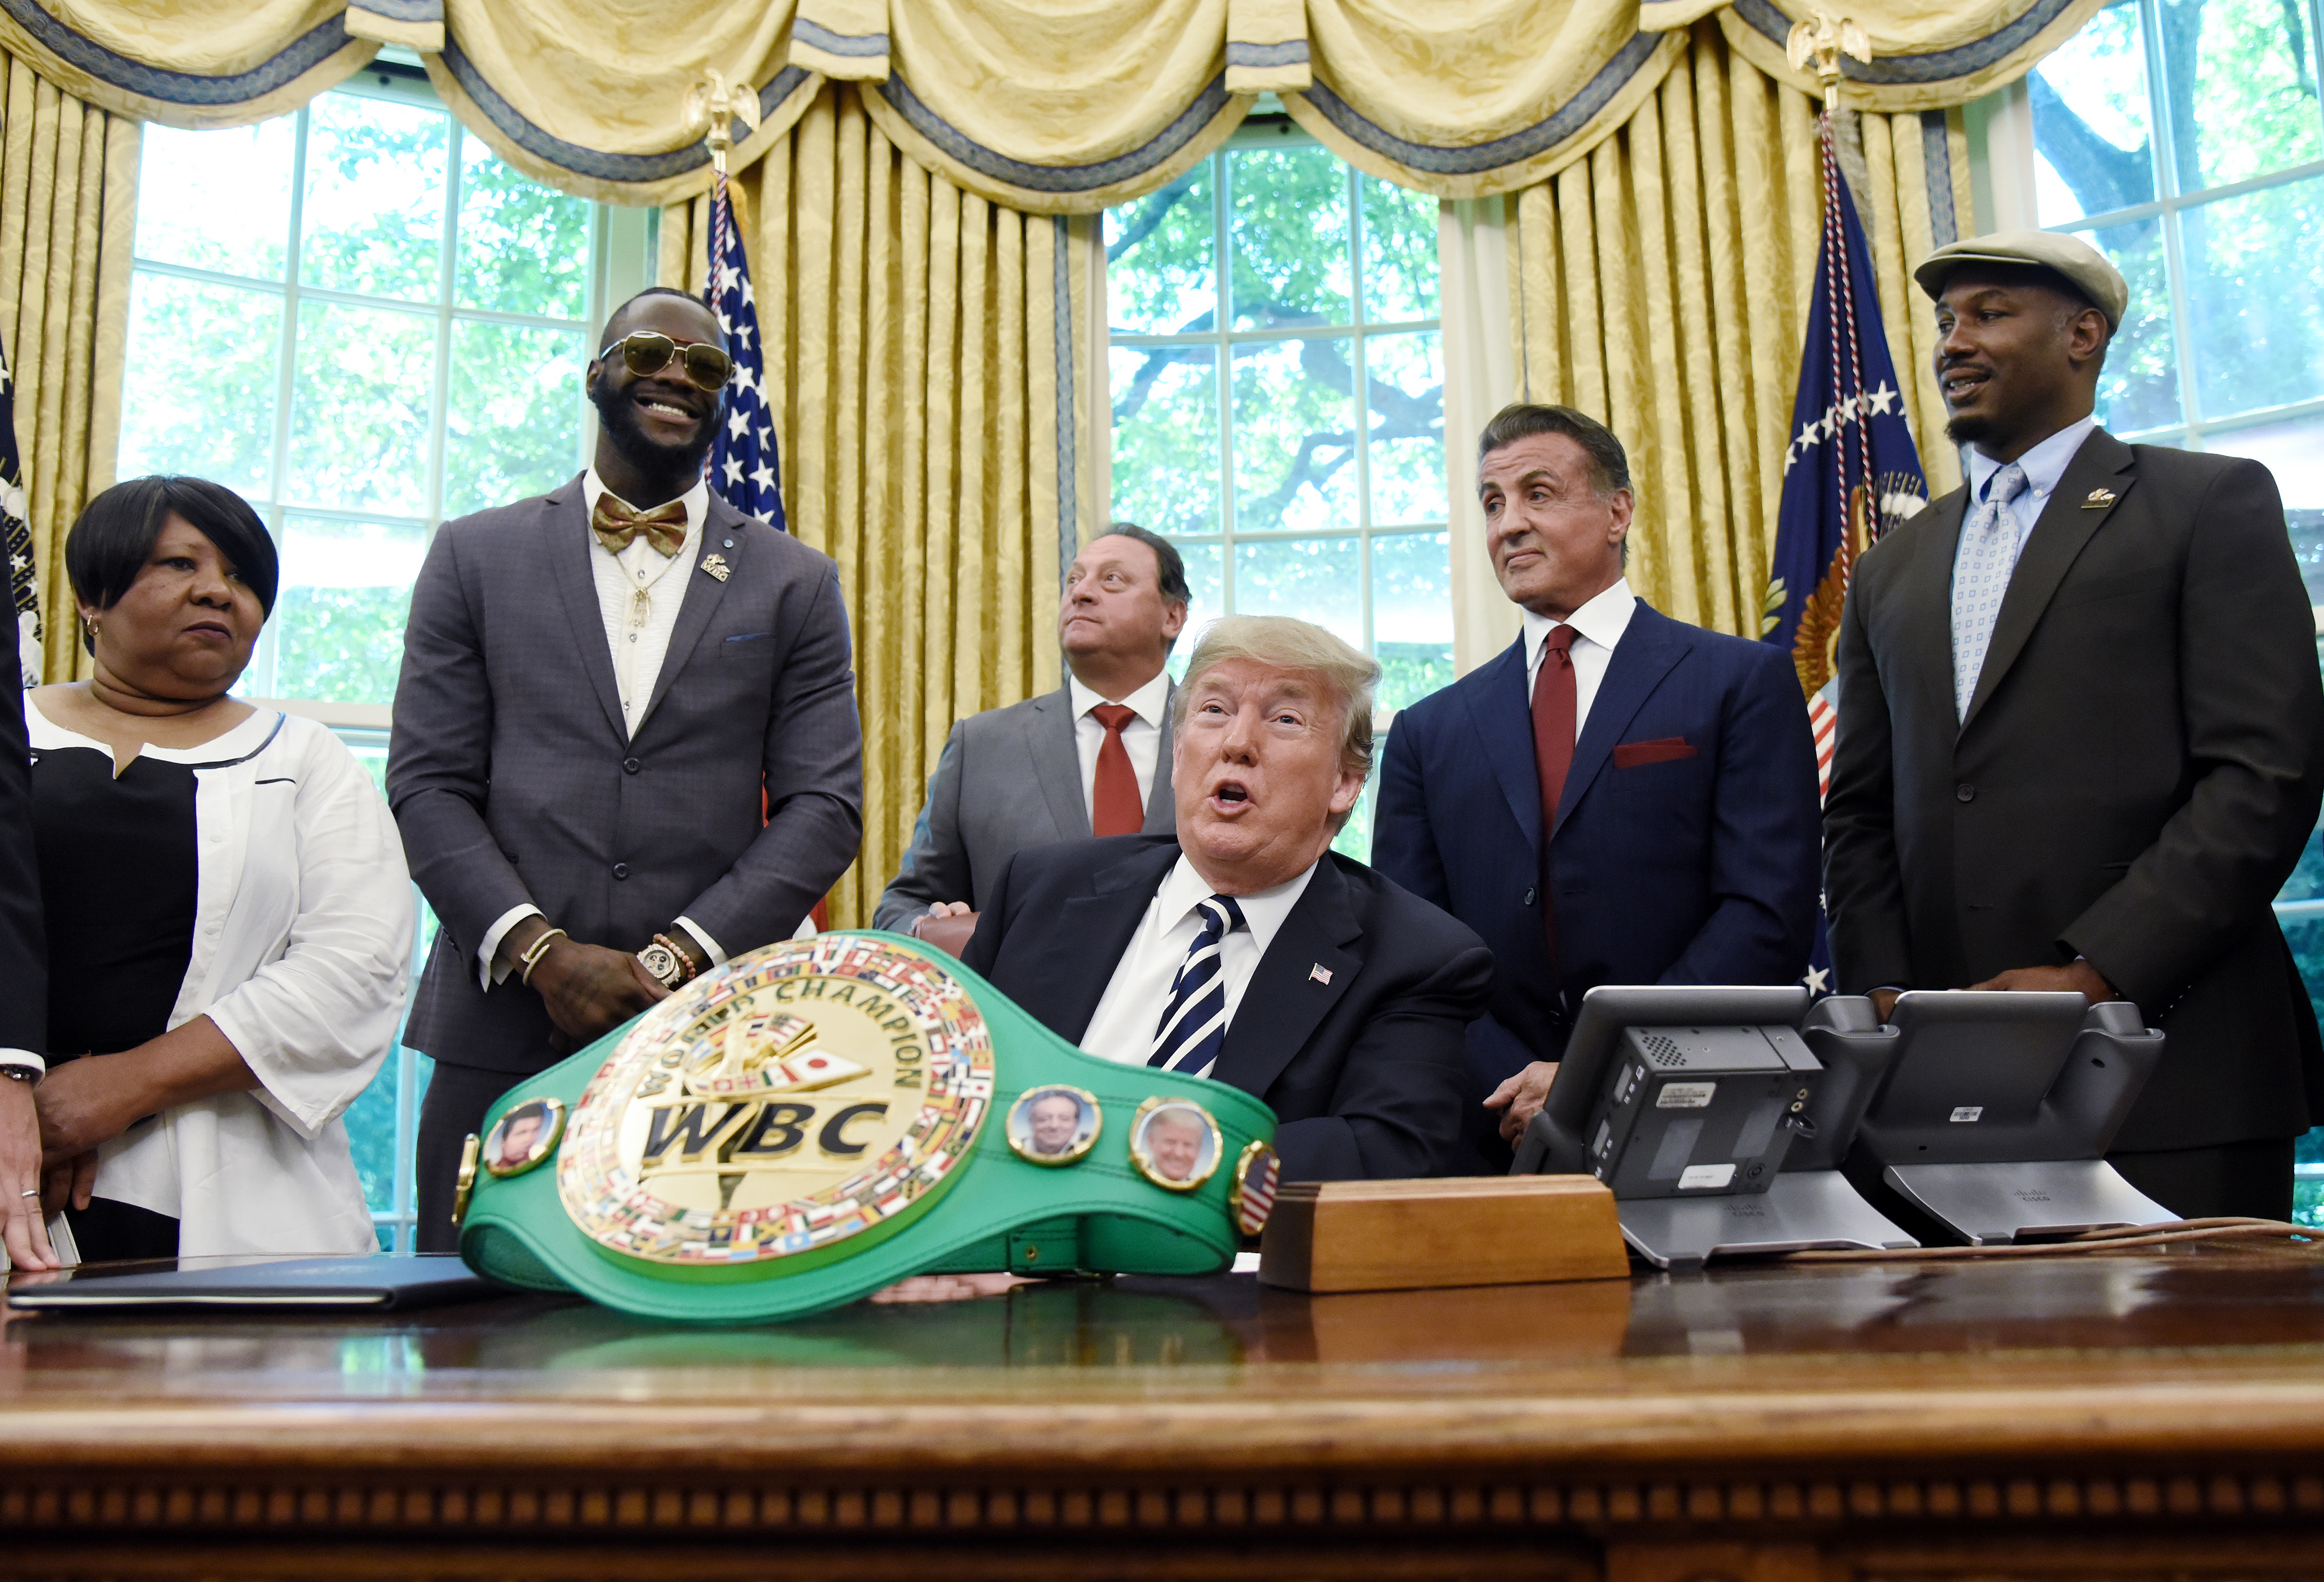 U.S. President Donald Trump speaks after signing an executive order granting a posthumouspardon for Jack Johnson, the first black heavyweight boxing champion, as boxing champion Lenox Lewis, from left, and actor Sylvester Stallone attend in the Oval Office of the White House in Washington, D.C., U.S., on Thursday, May 24, 2018.